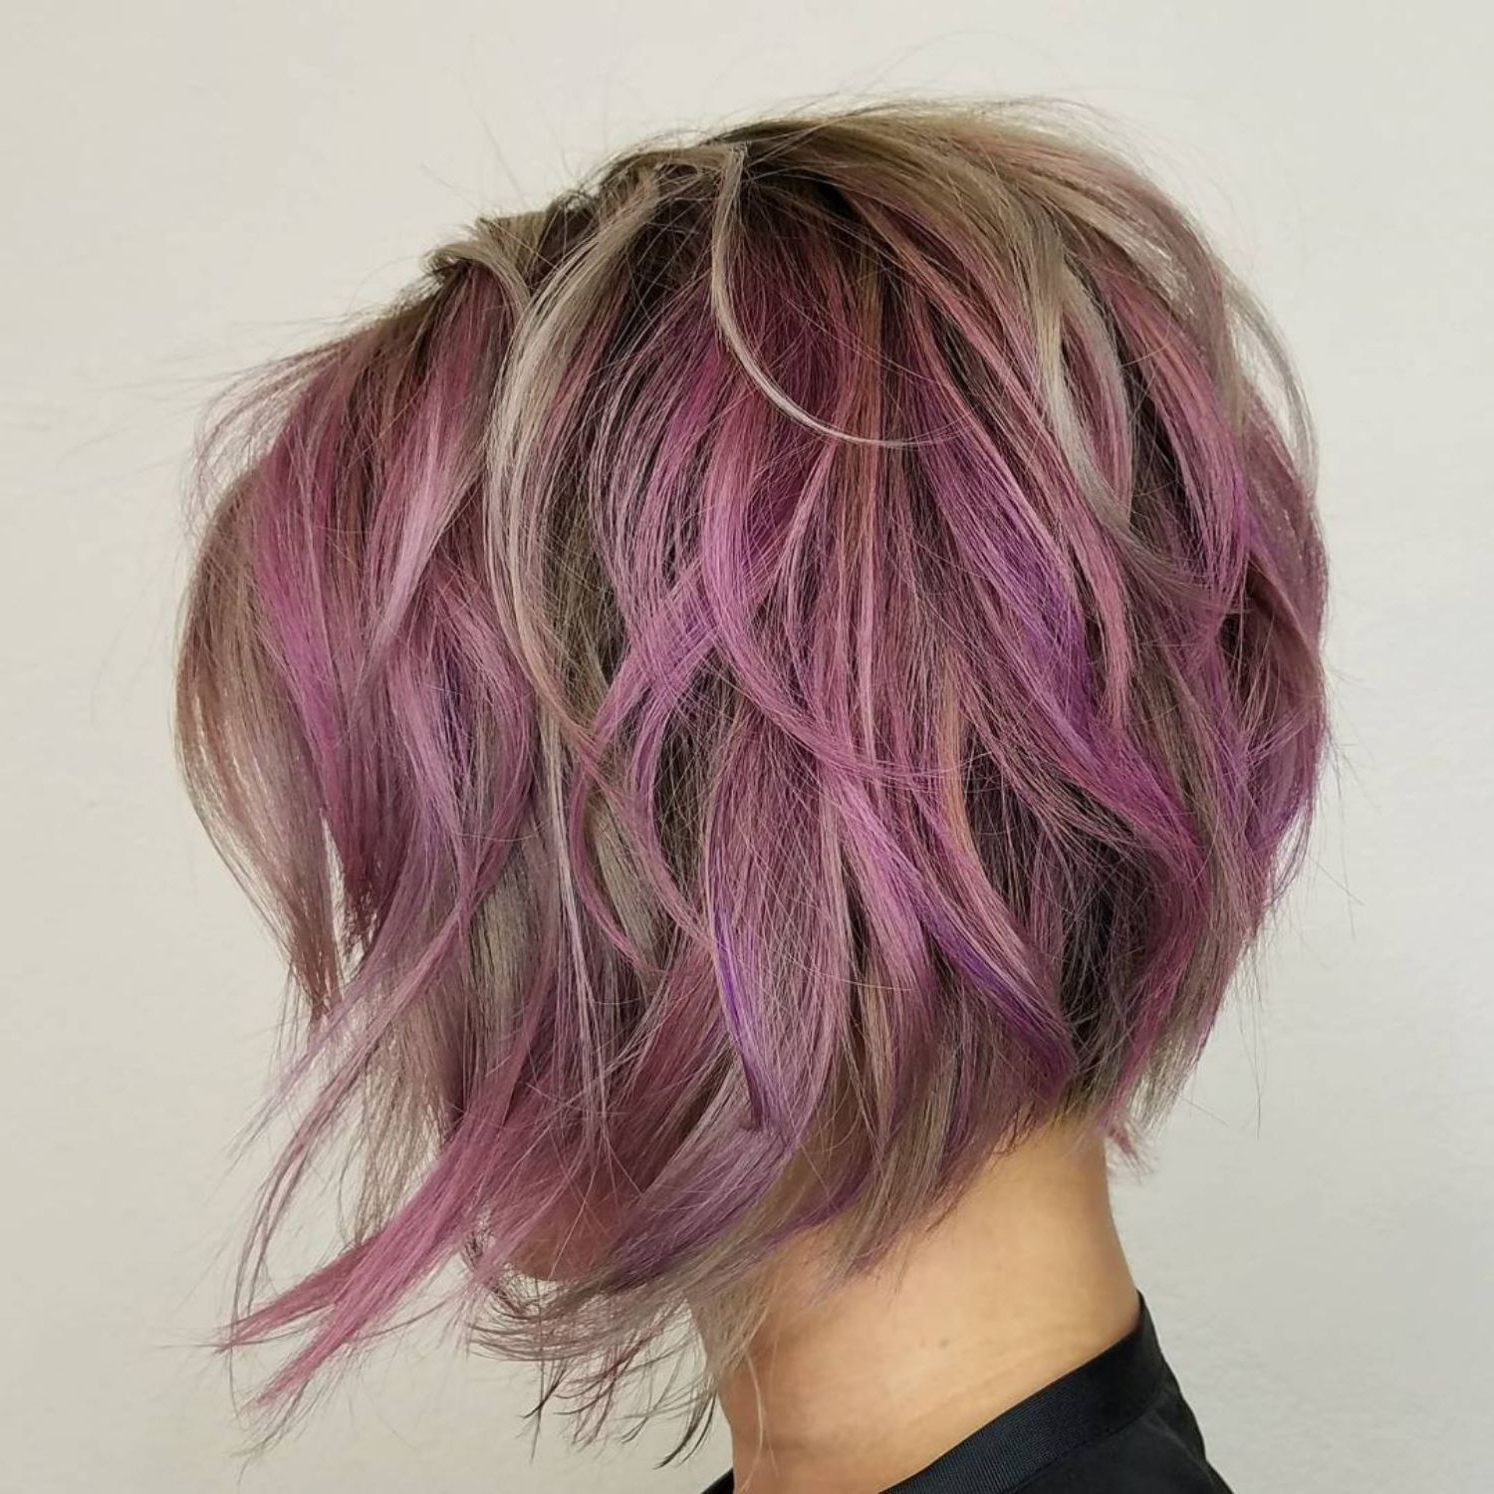 60 Layered Bob Styles: Modern Haircuts With Layers For Any Occasion For Short Messy Lilac Hairstyles (View 6 of 20)